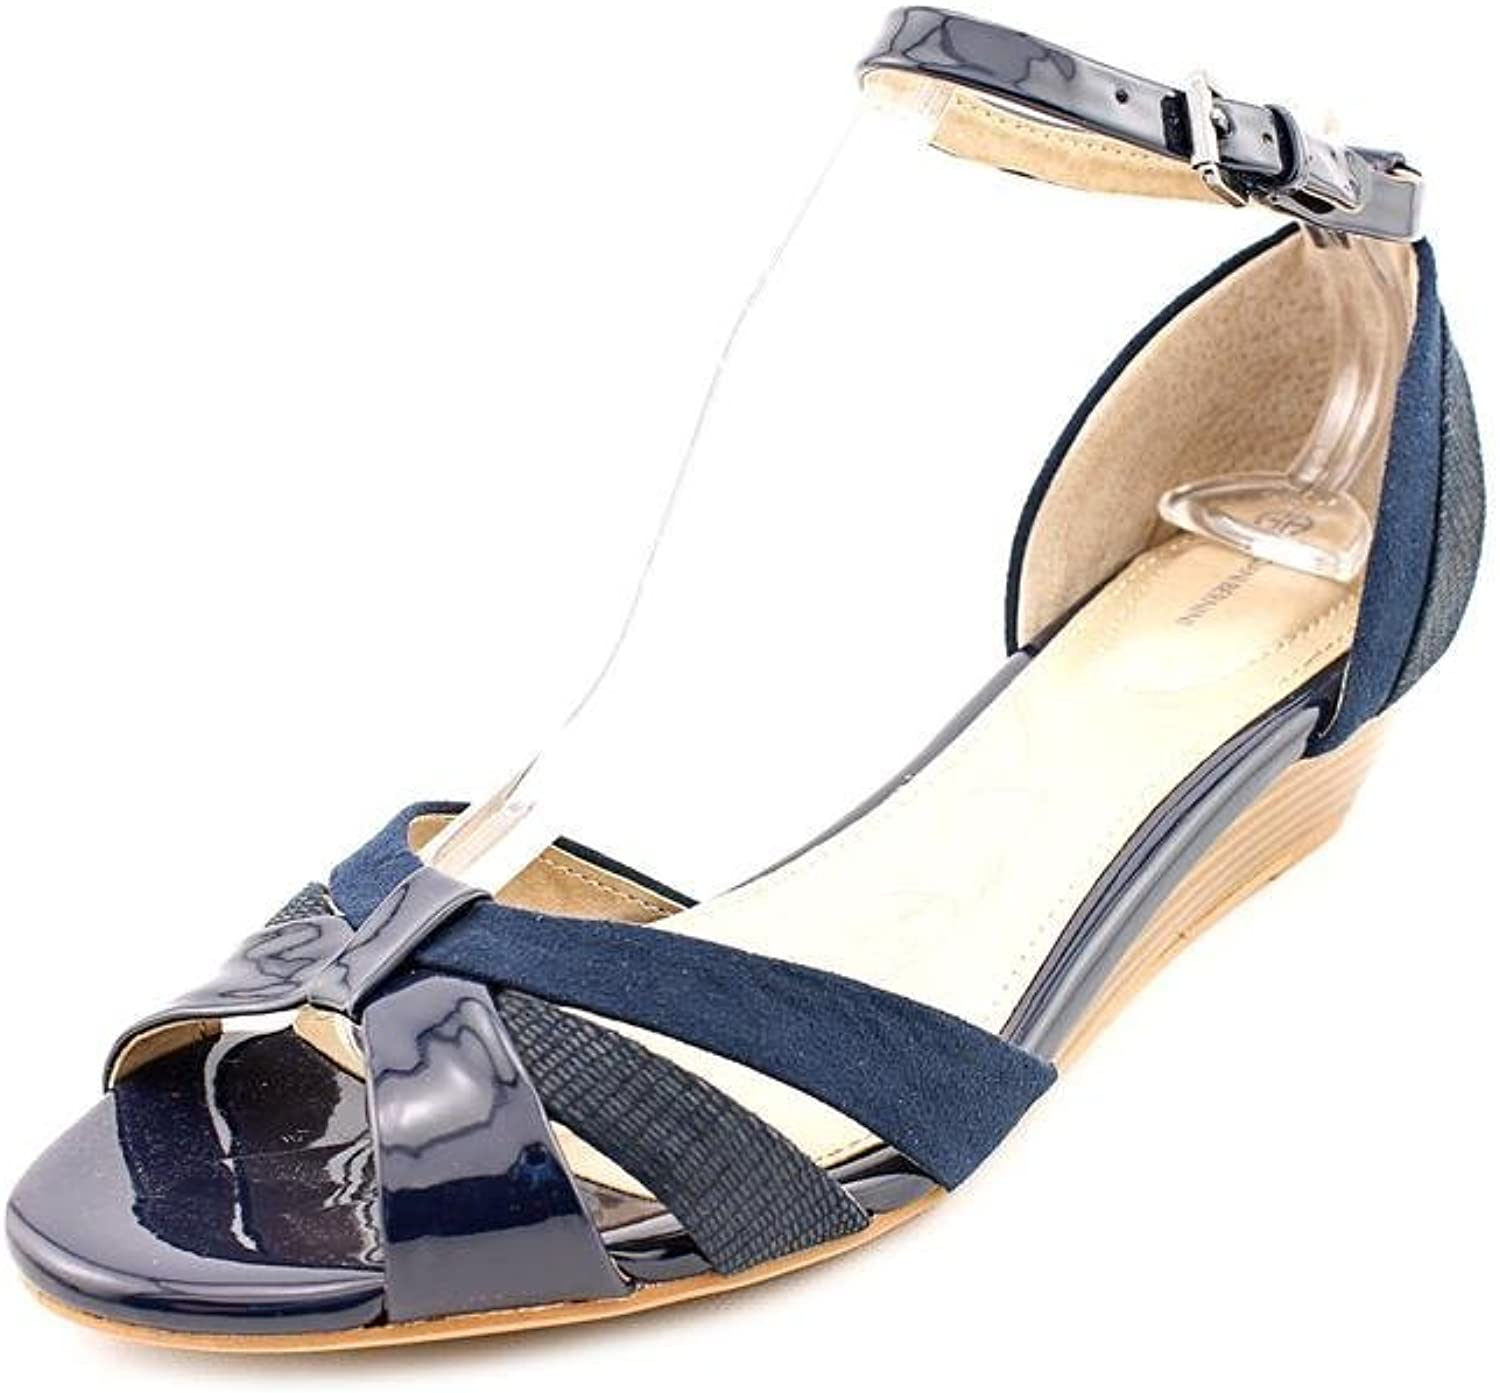 Giani Bernini Reeo Womens Size 7 bluee Wedge Sandals shoes